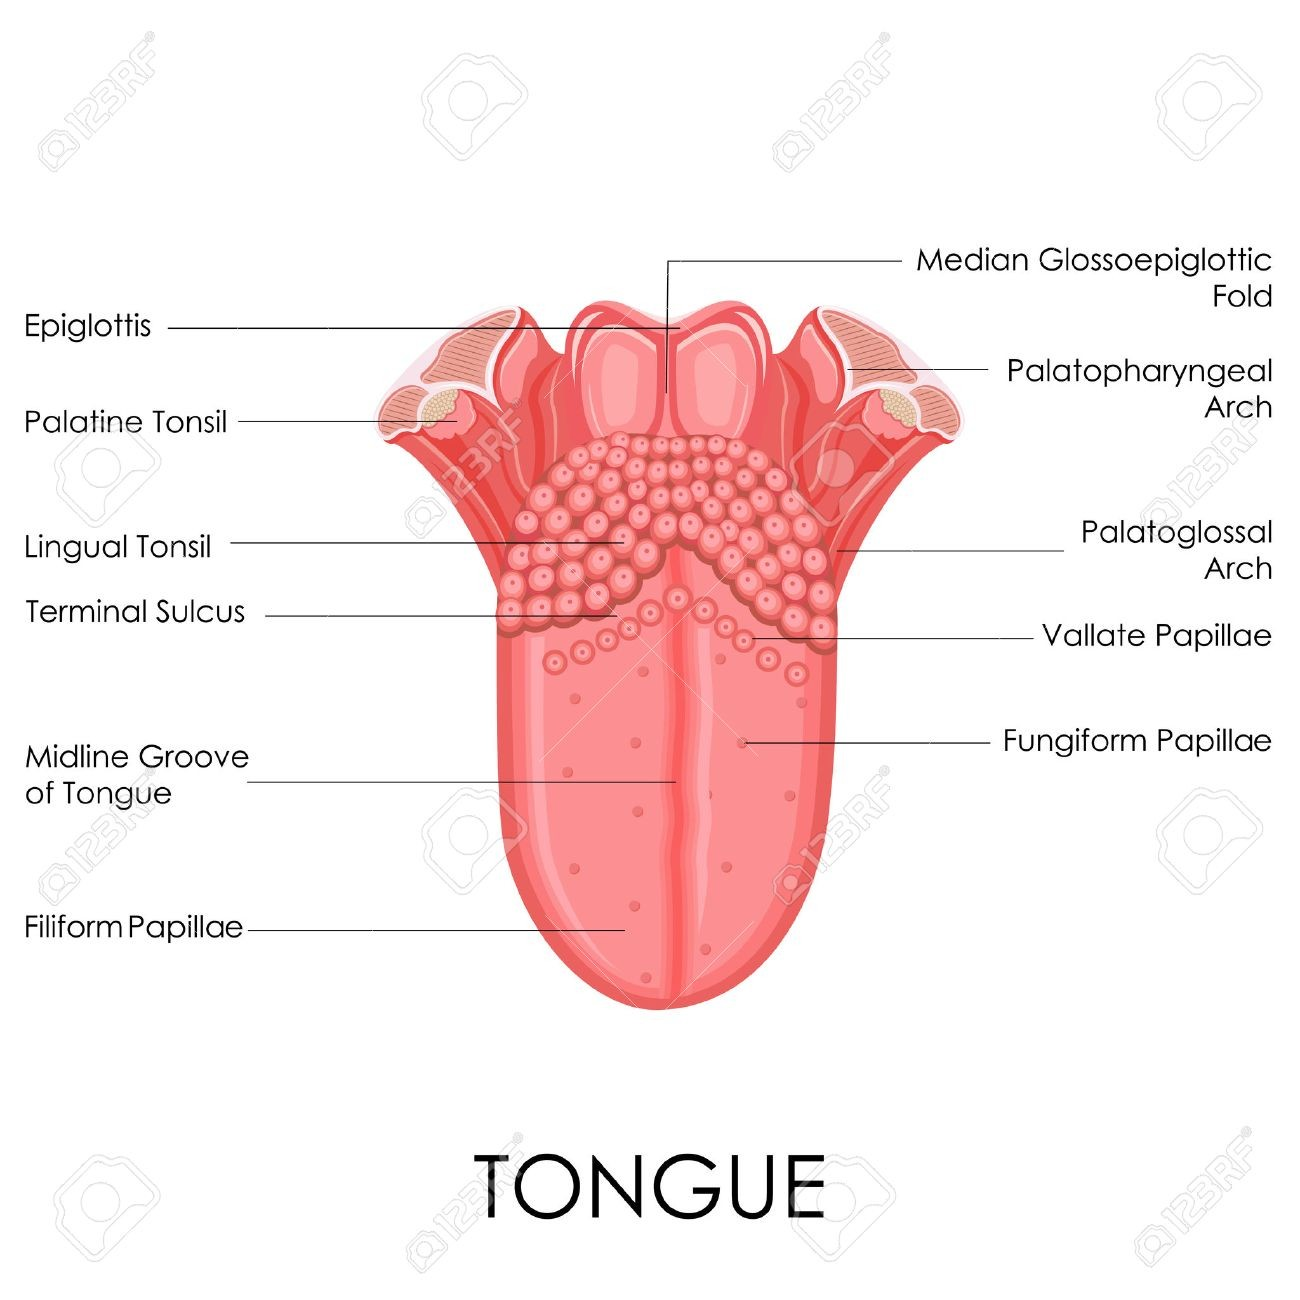 Tongue Anatomy Gross View